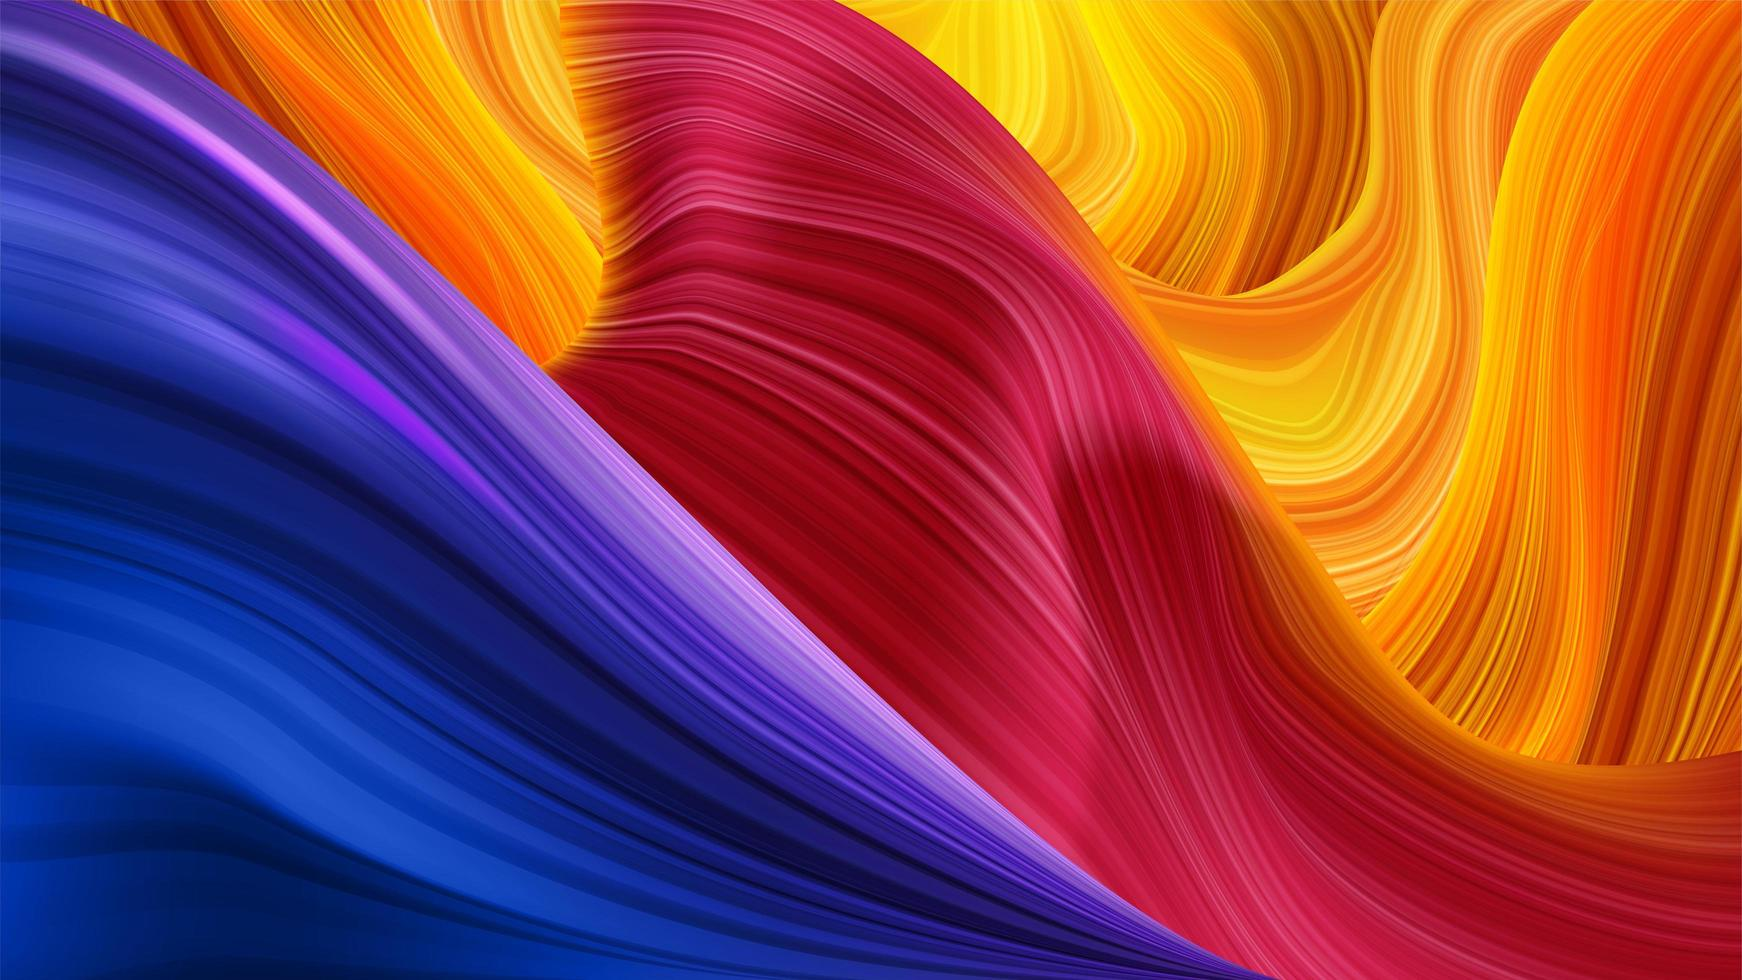 Abstract Colorful Fluid Twisting Pattern vector